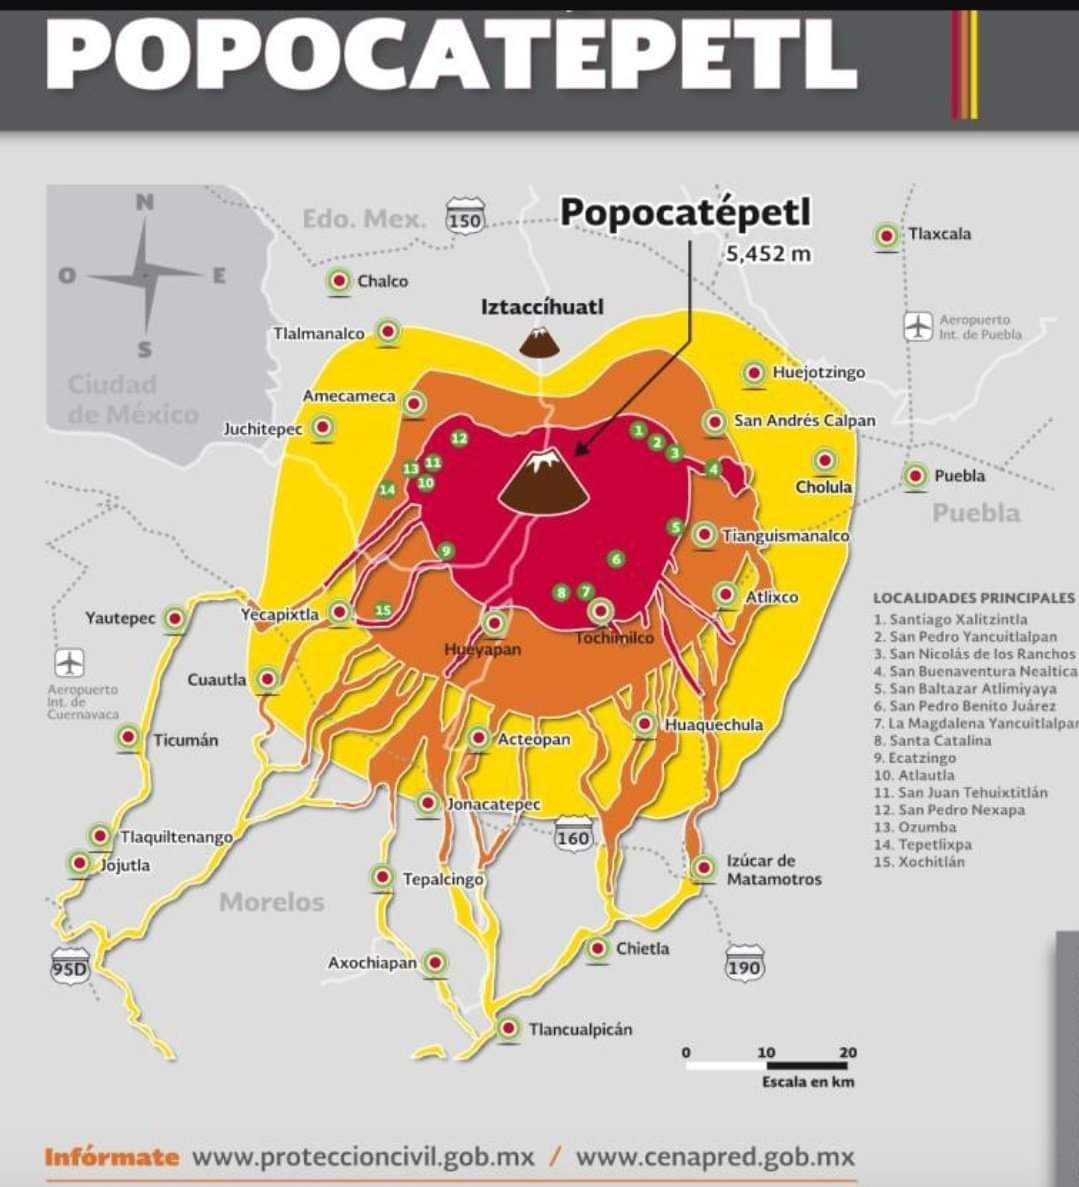 Popocatépetl - 29.03.2019 - areas that may be affected by any lava flows in the event of an eruption - Doc.Proteccion civile / Cenapred